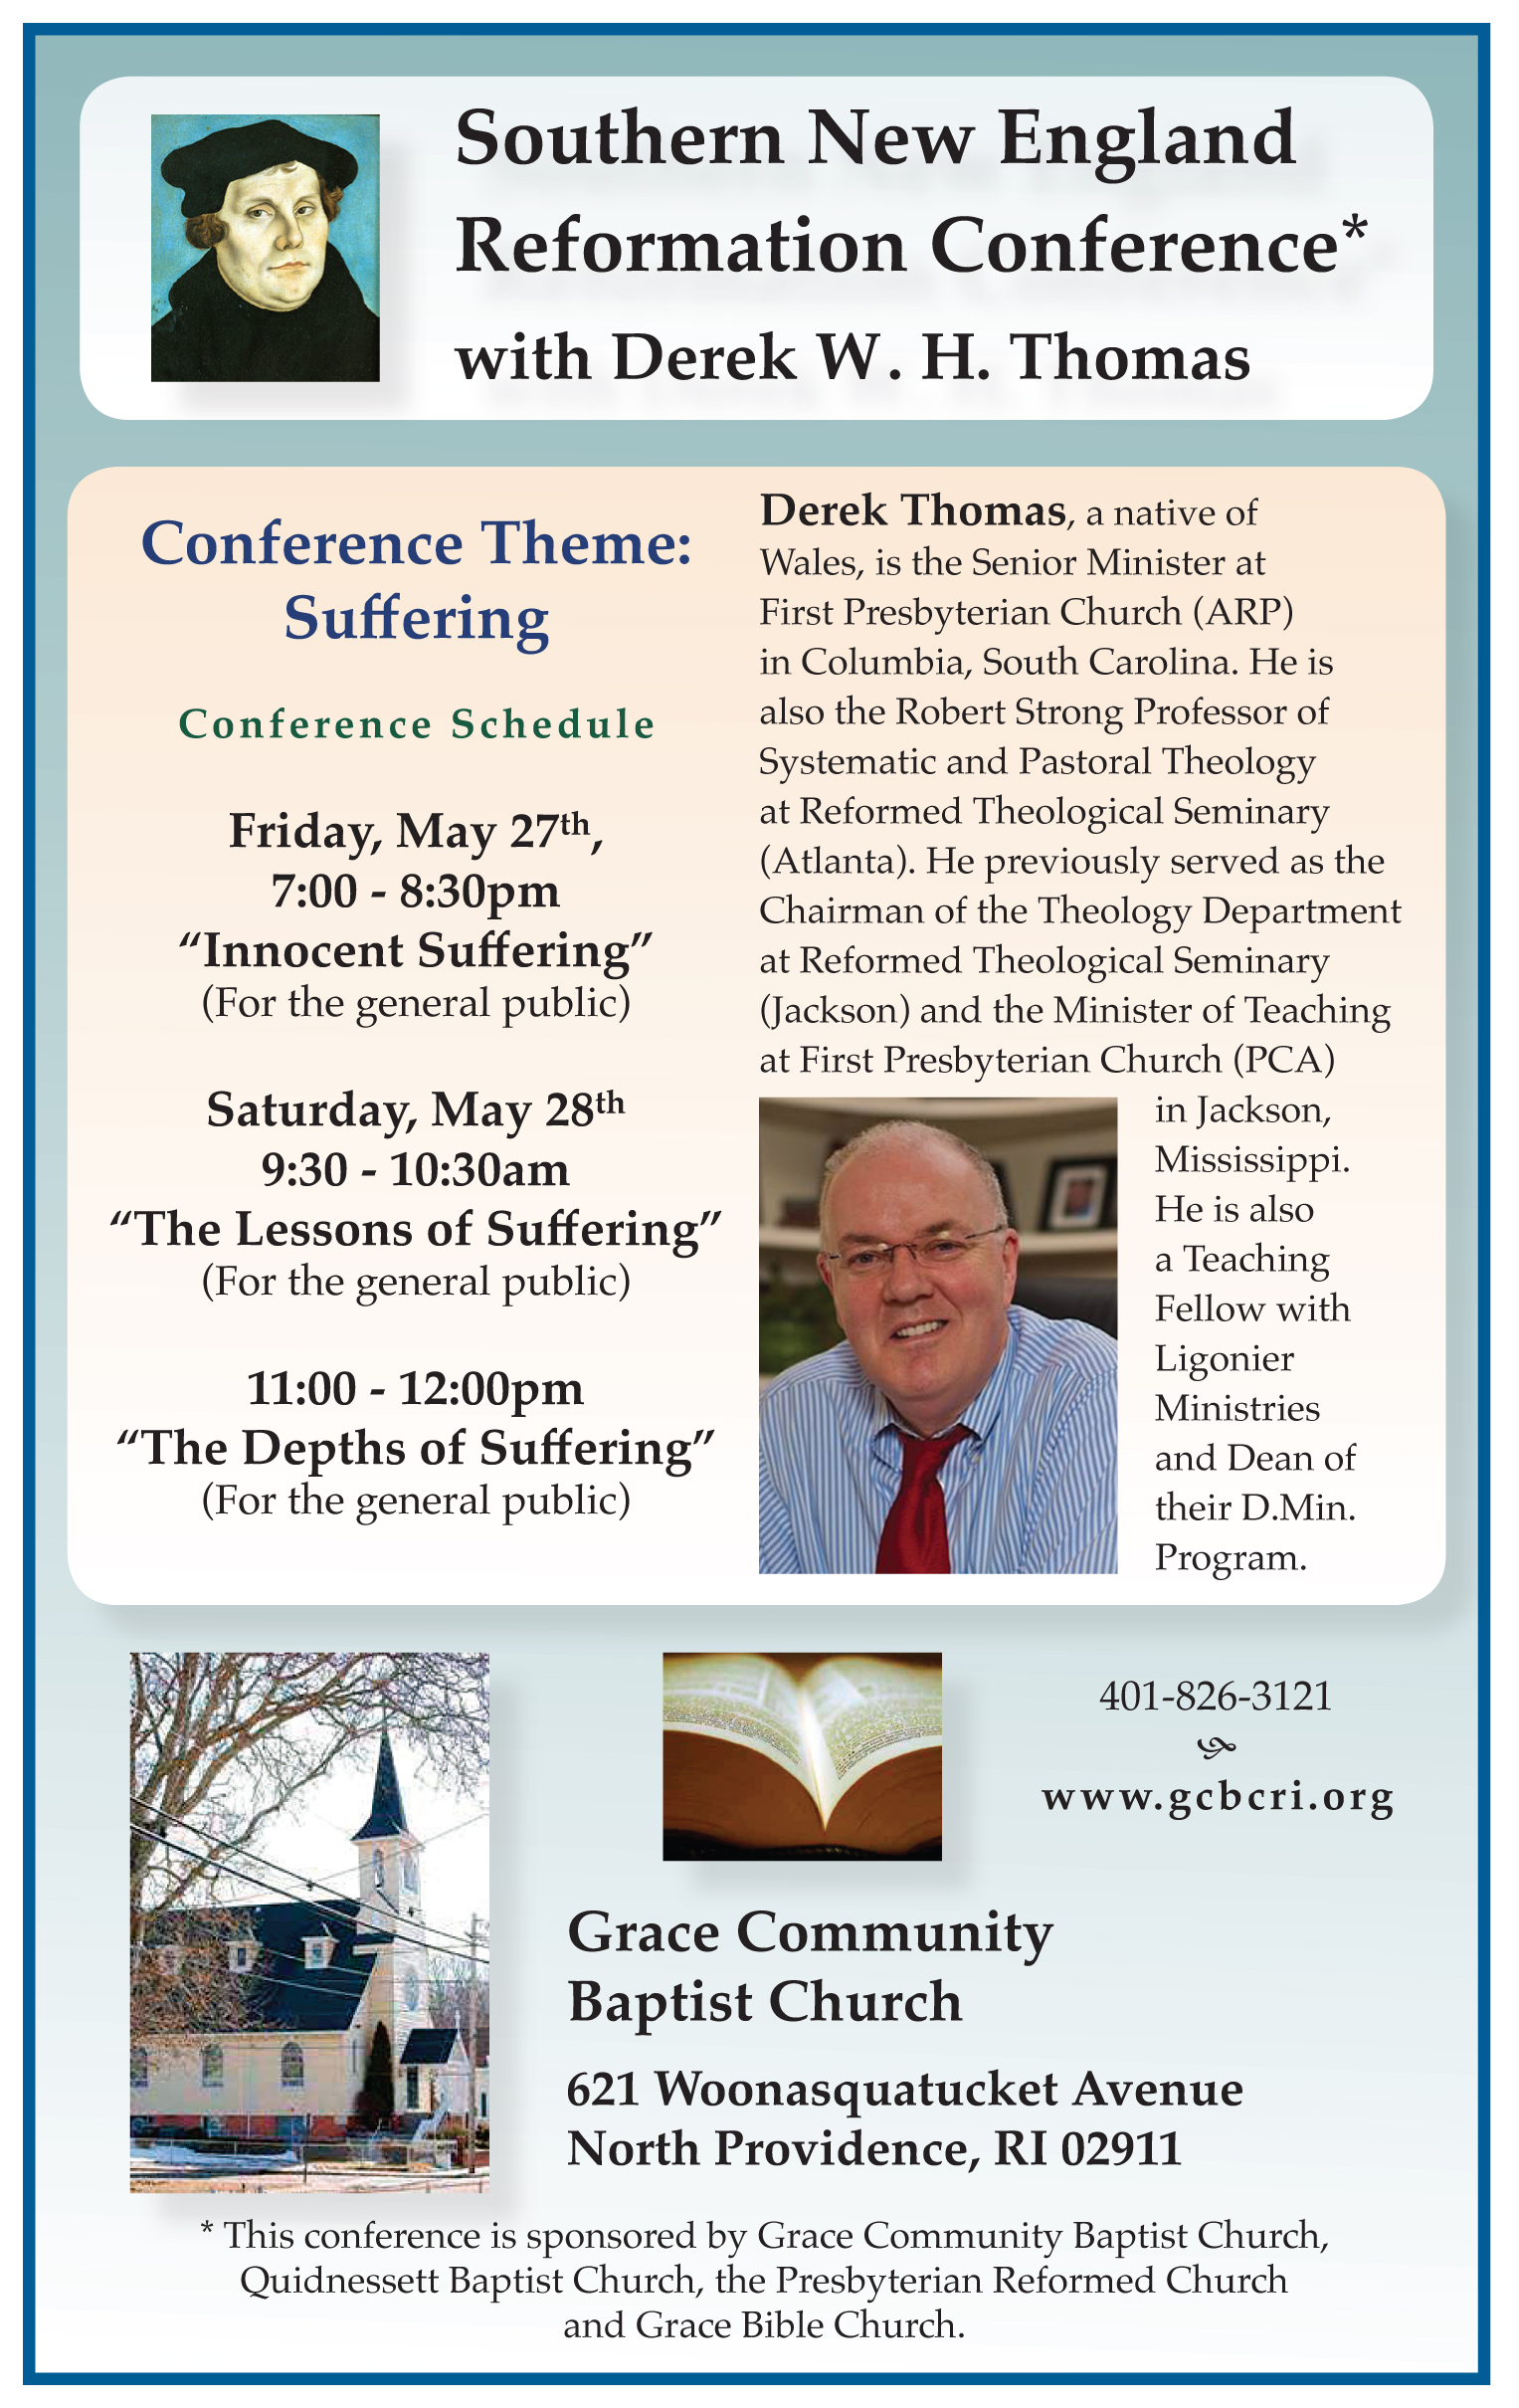 Sothern-New-England-Reformation-Conference-with-Derek-W.H.-Thomas